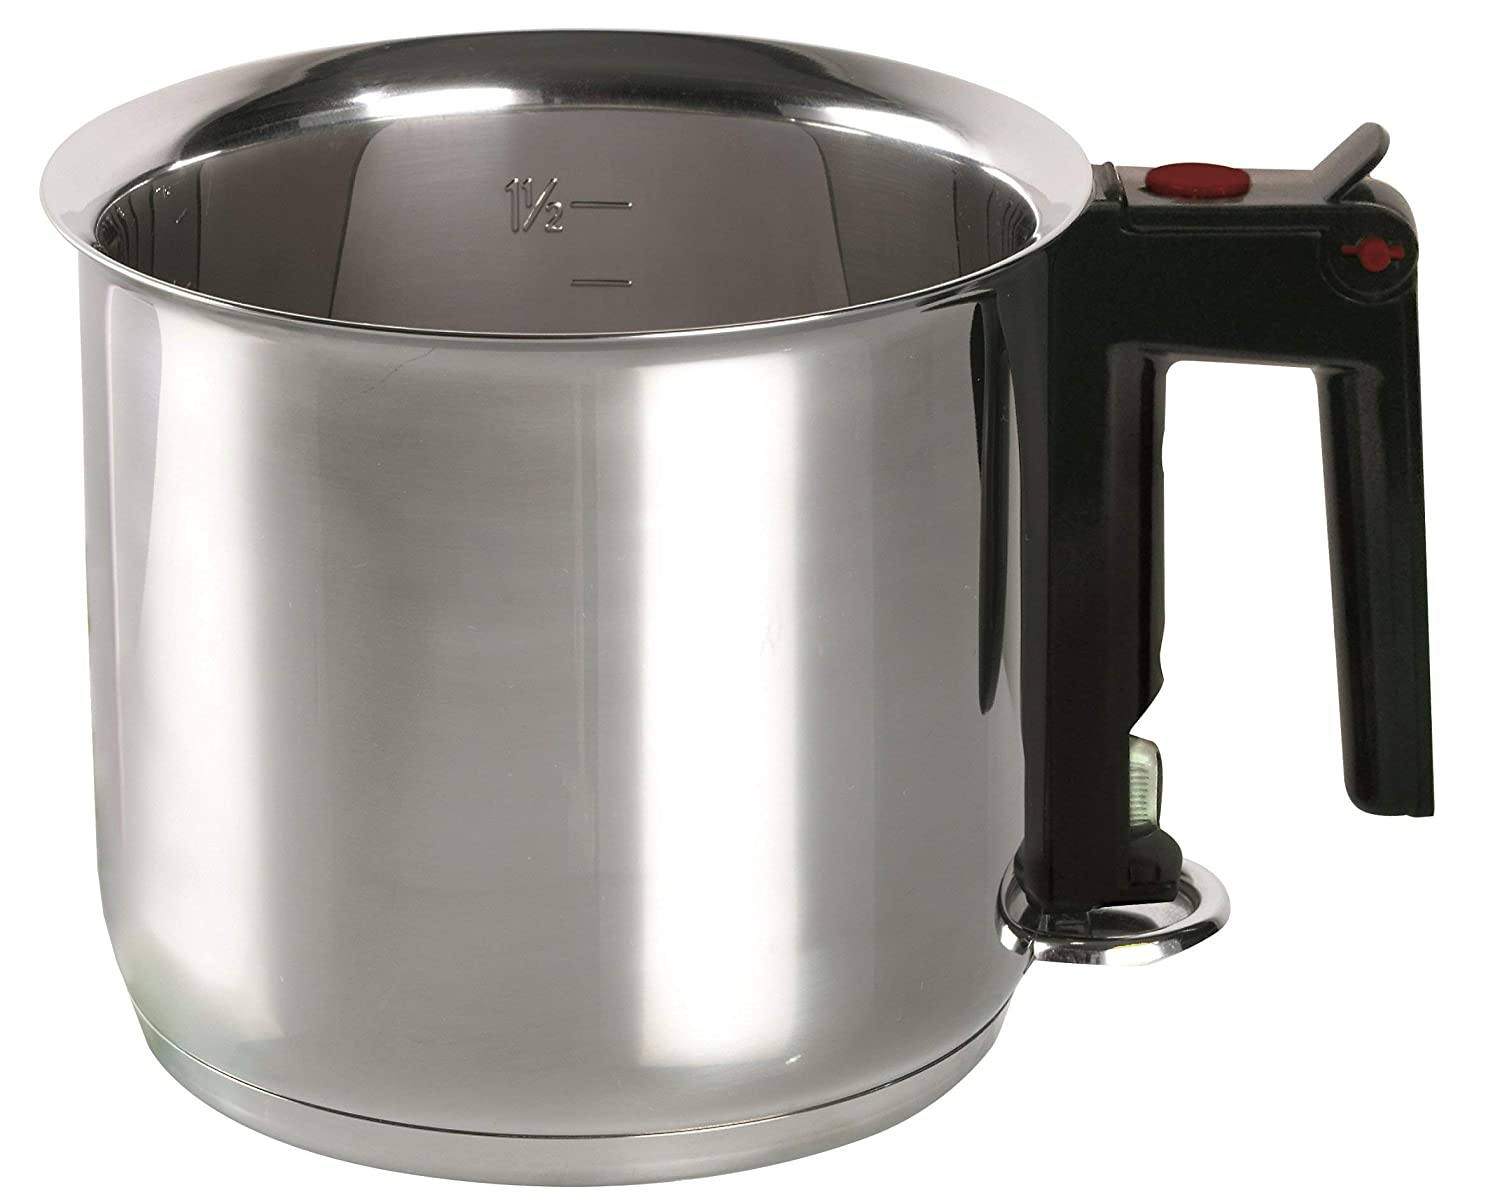 ELO 99414 Stainless Steel 1.6-Quart Double Boiling Simmer Pot Induction Ready